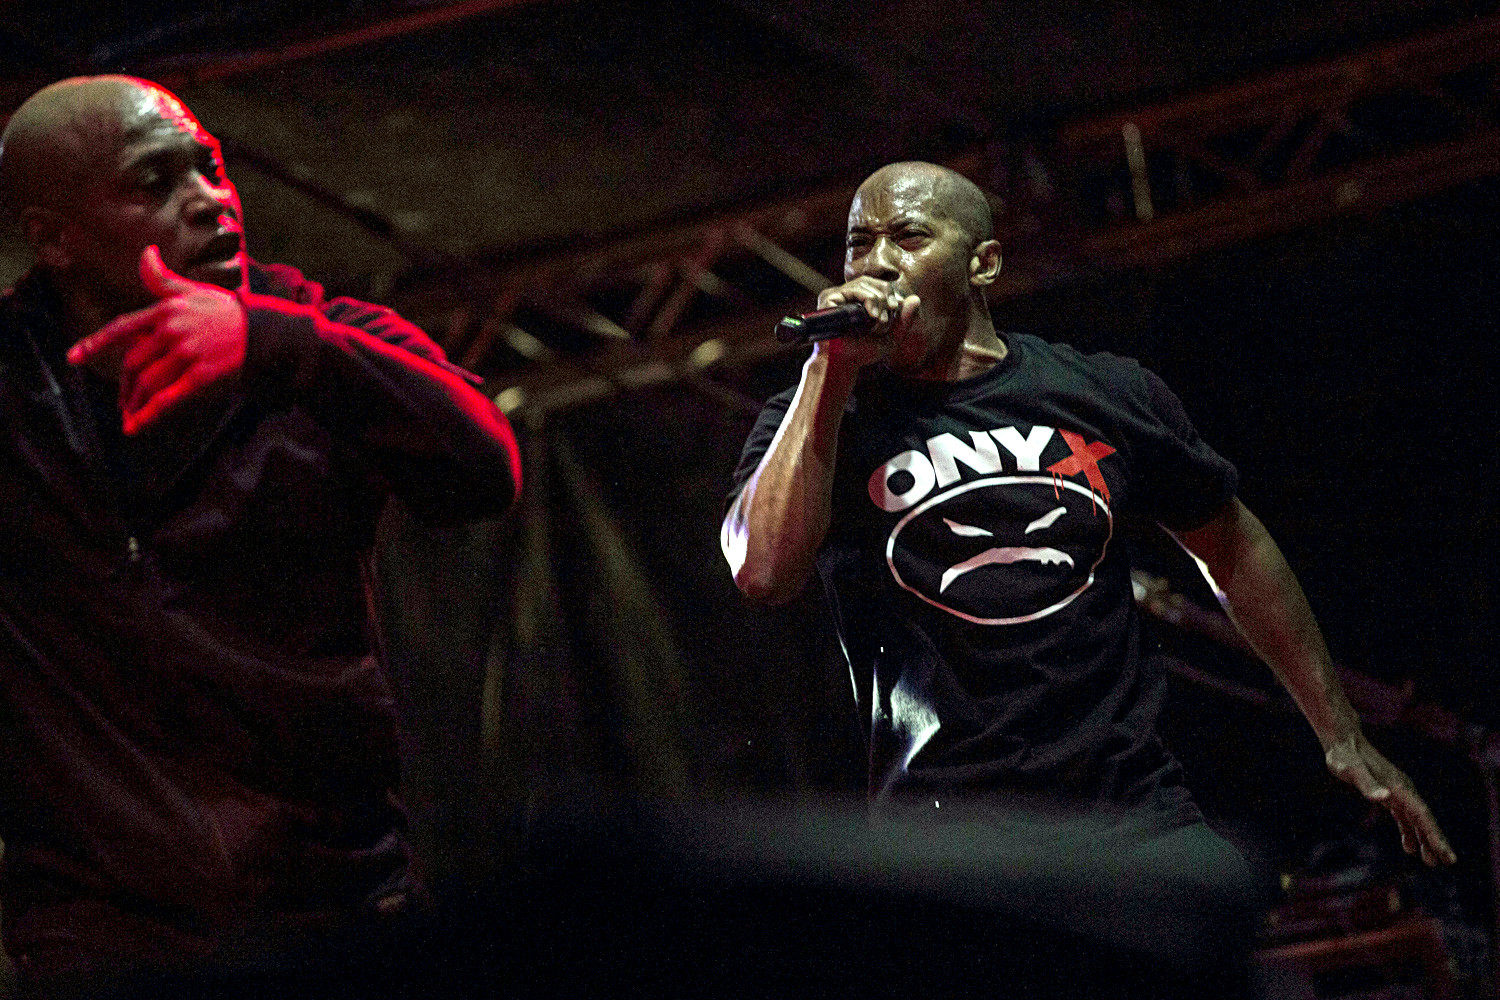 Onyx hip-hop band during Warsaw Challenge festival in Warsaw on May 15, 2017.